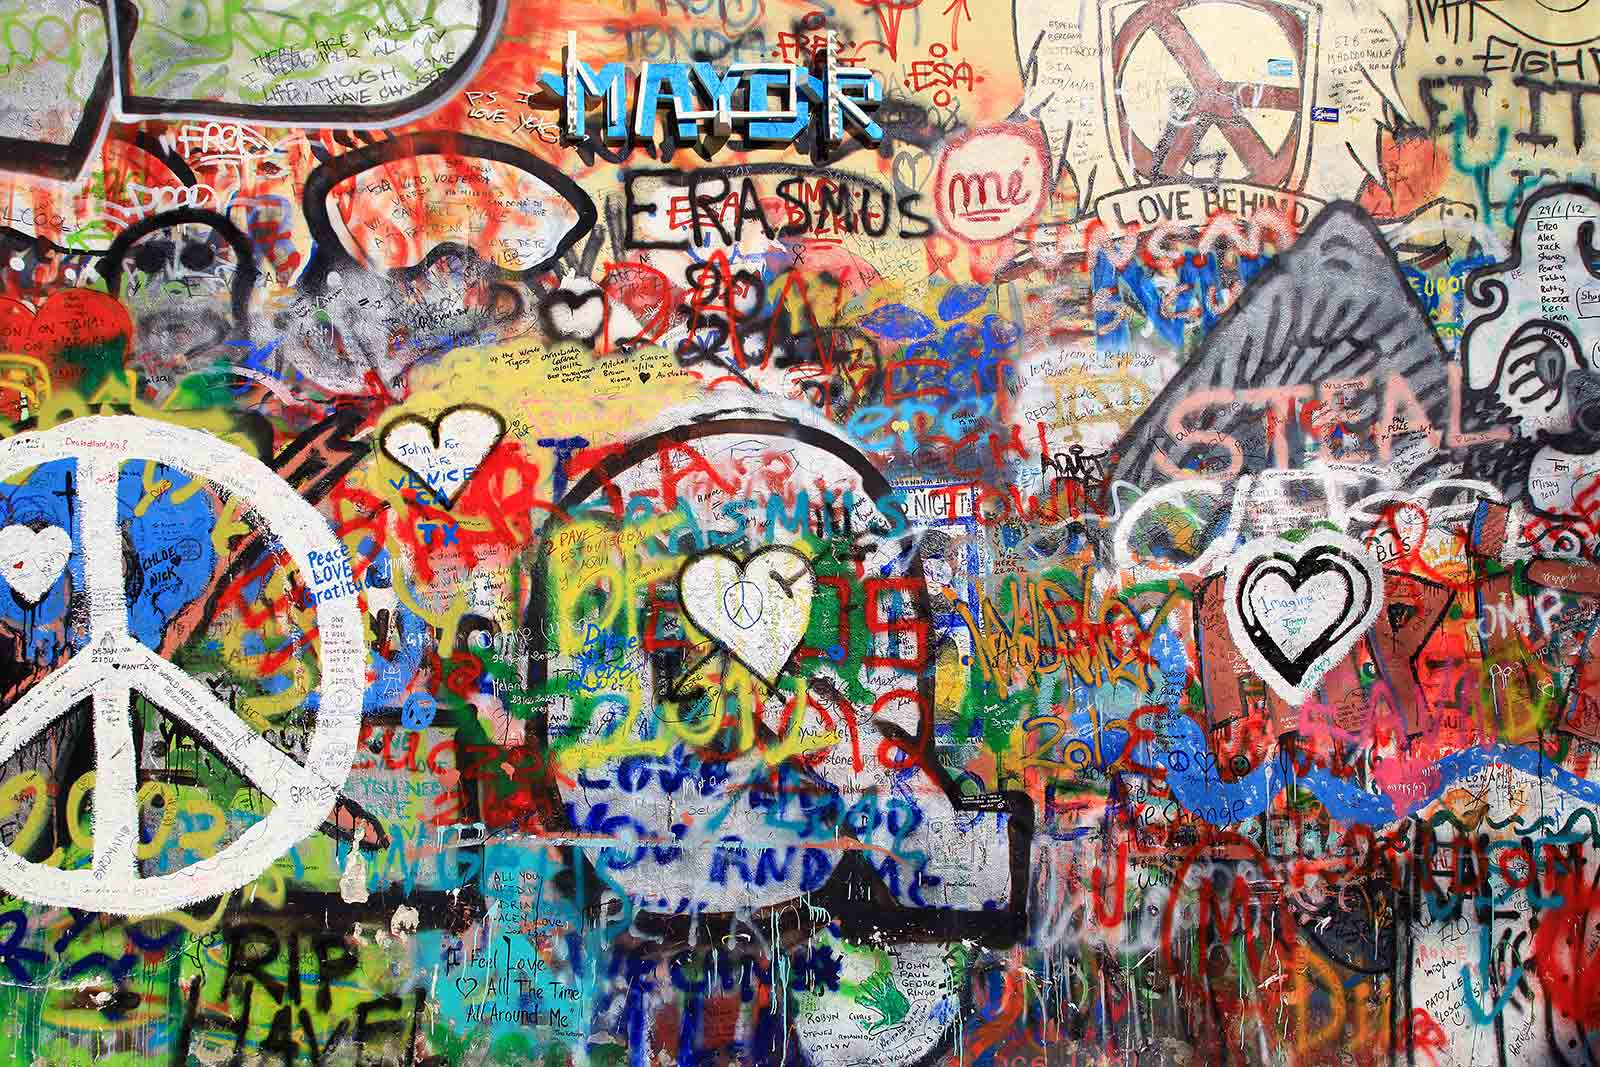 John Lennon wall in Prague, Czech Republic.